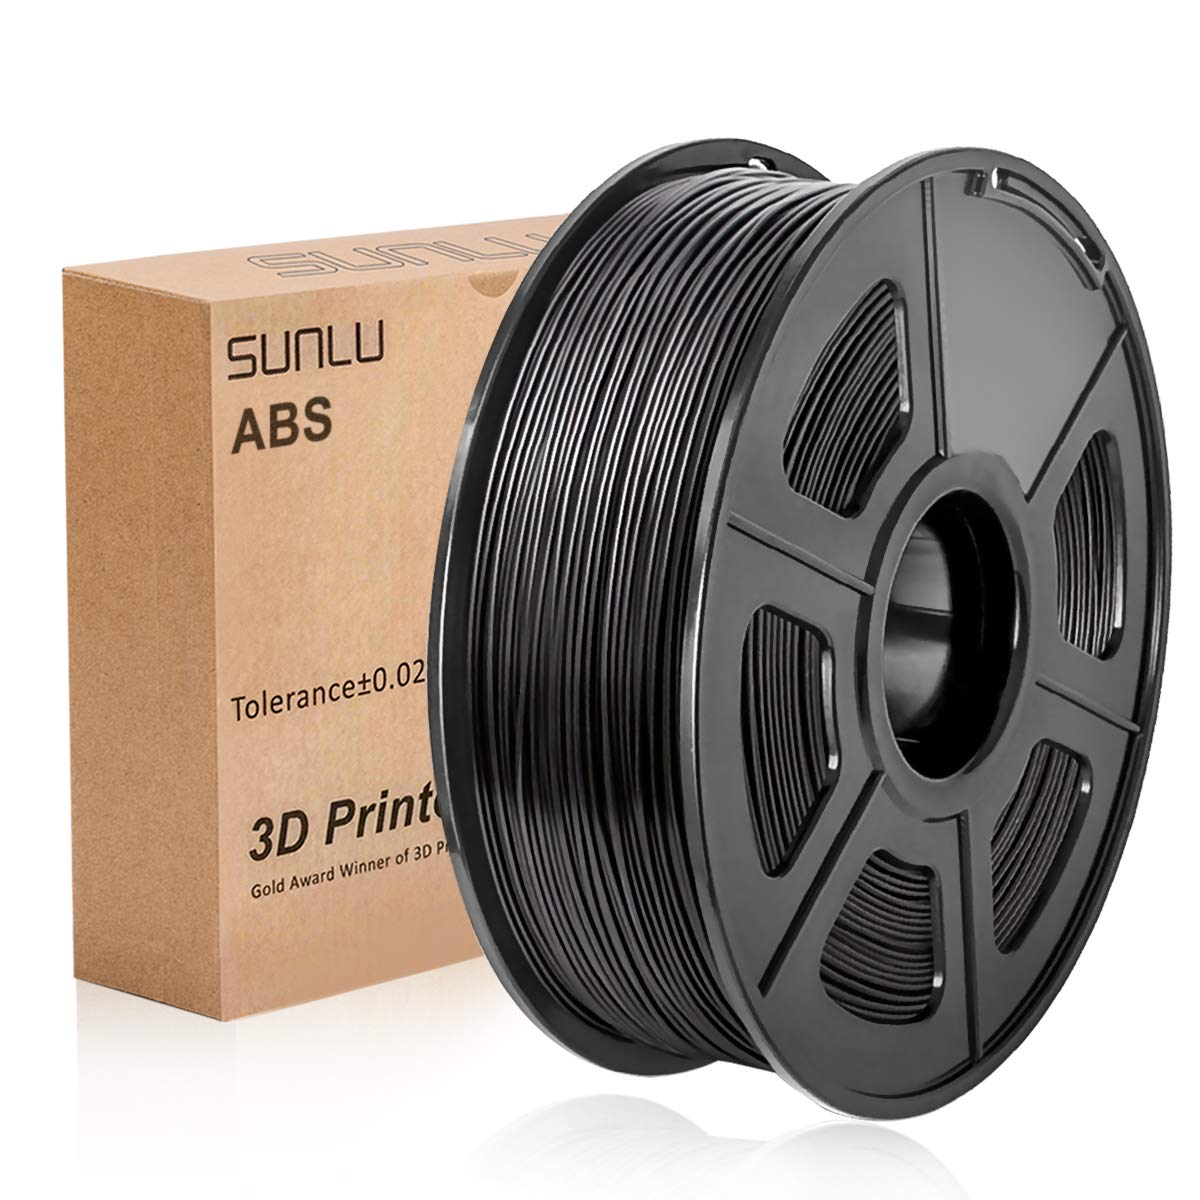 ABS Filament 1.75mm, SUNLU ABS Filament for 3D Printer, Dimensional Accuracy +/- 0.02 mm, ABS Black 1KG